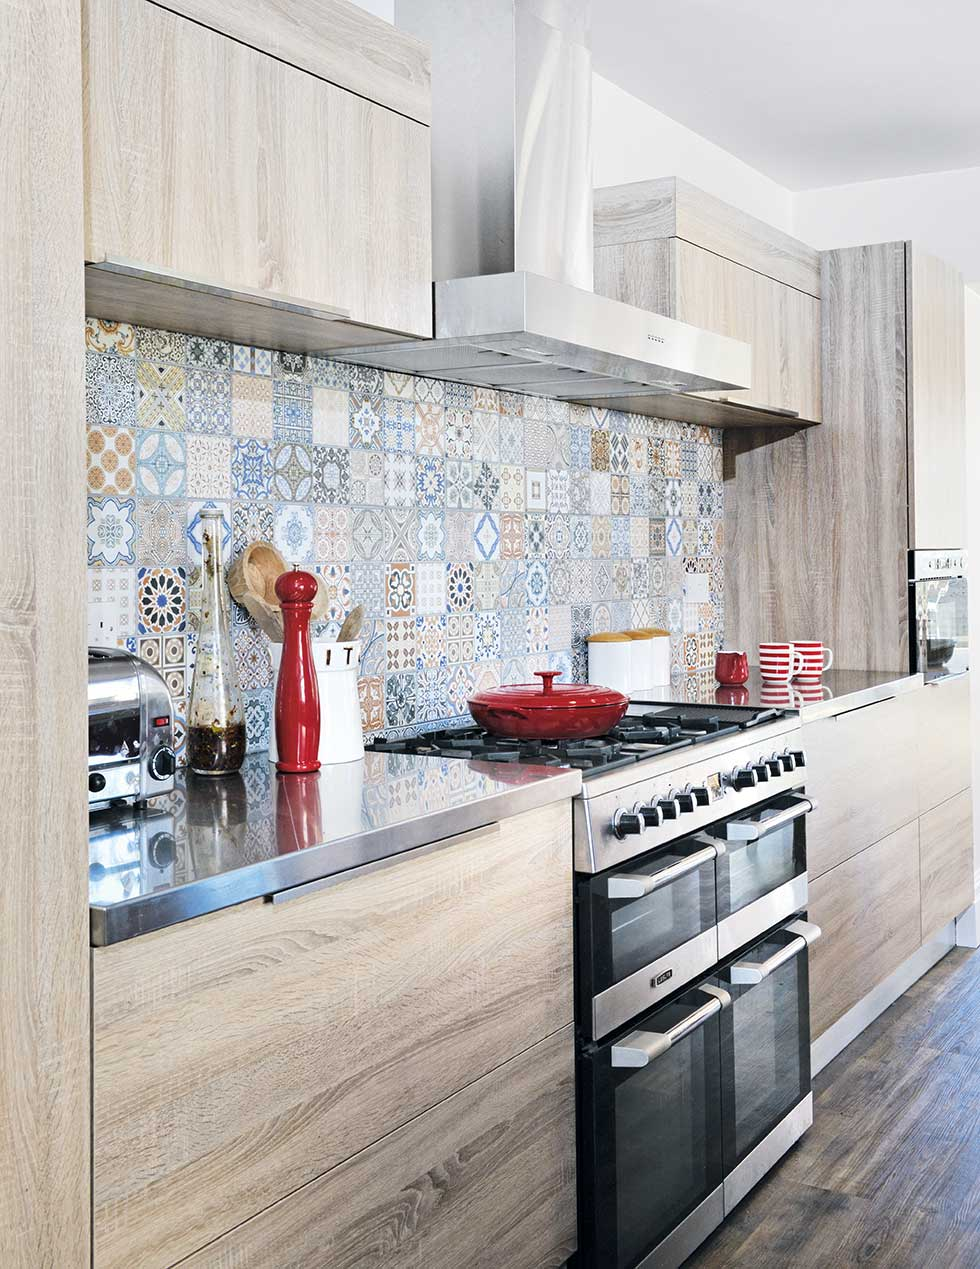 moroccan tiles oven in kitchen-diner extension